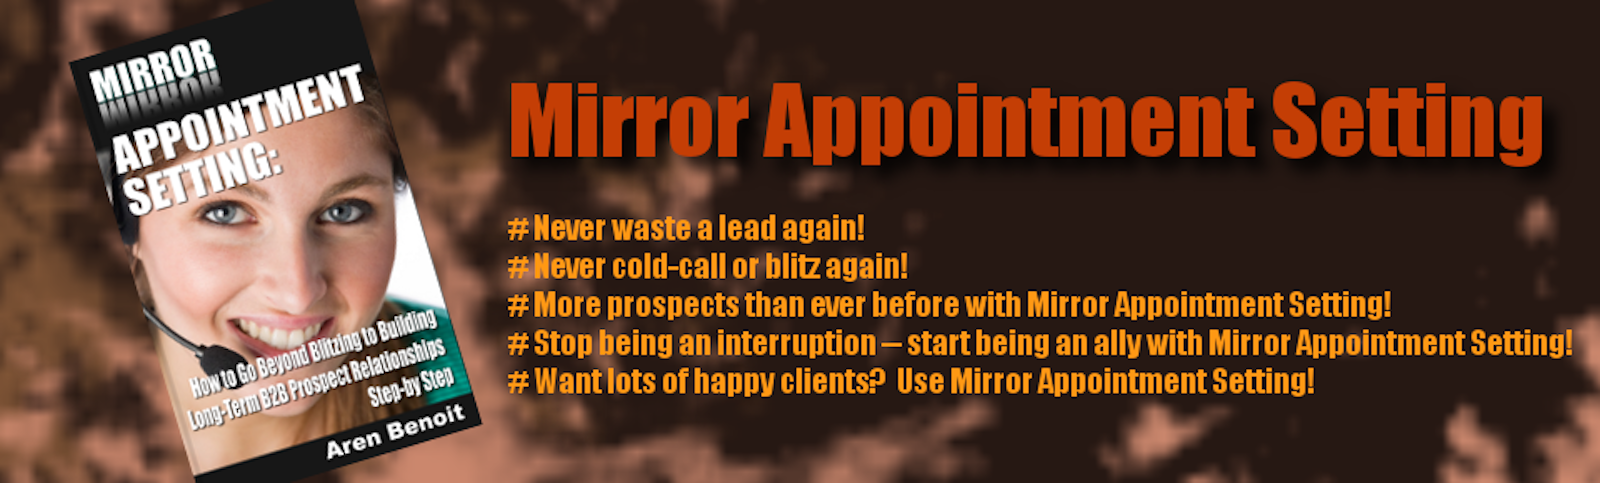 Aren Benoit | Mirror Appointment Setting